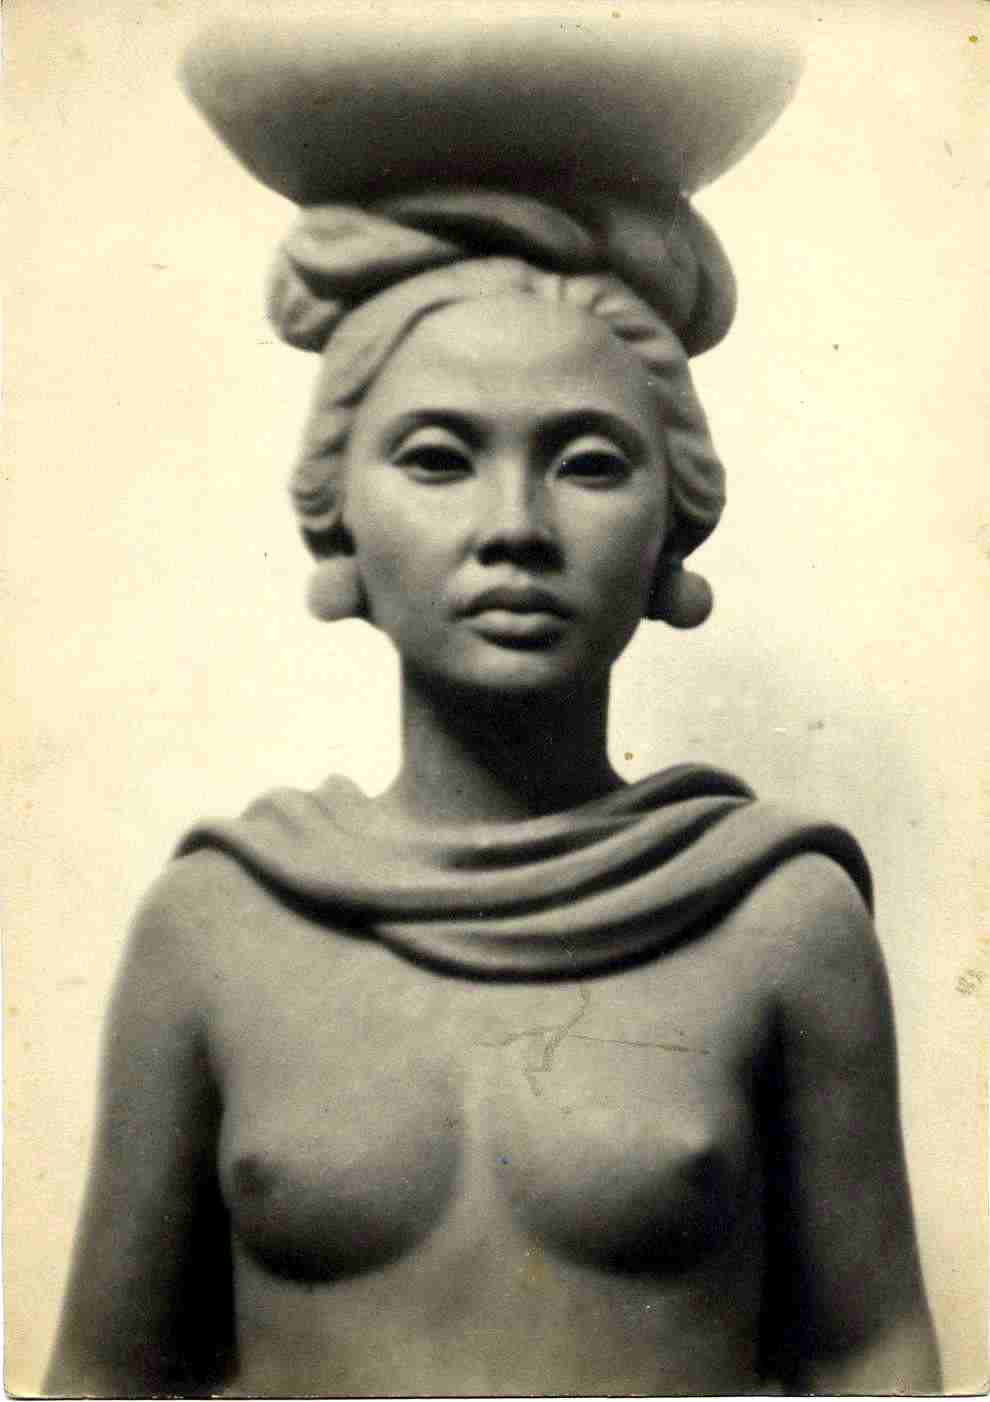 Rmpang Going to Market (terracotta) 1938, Left behind in Bali